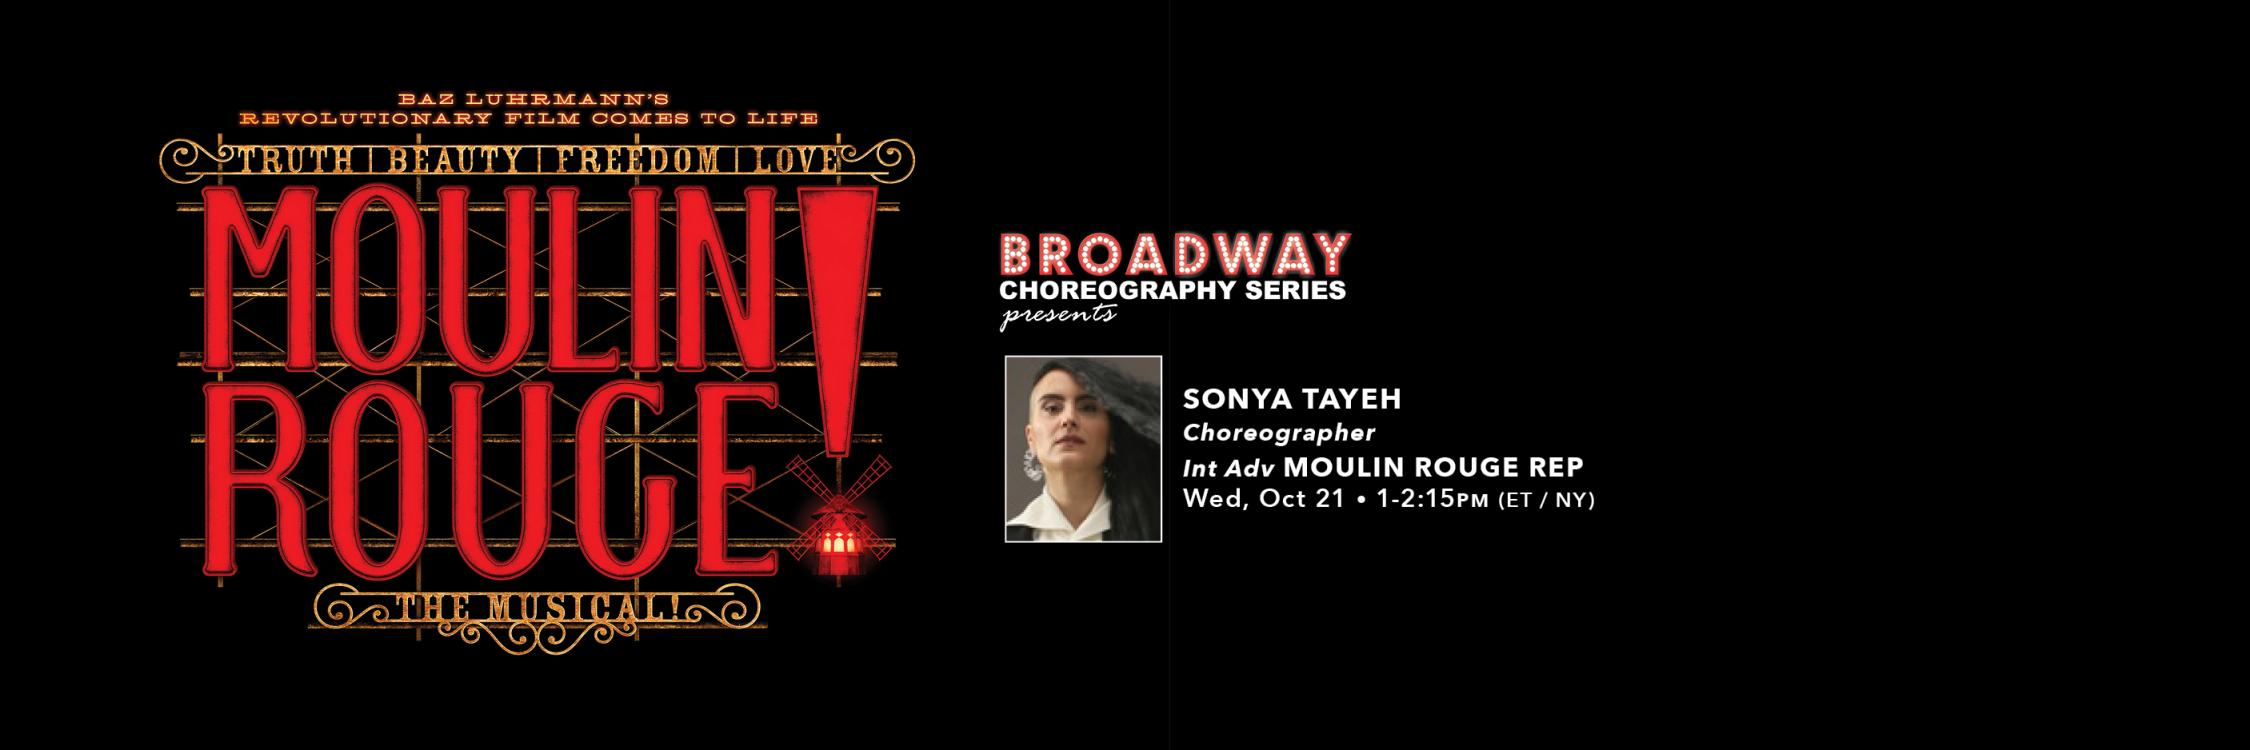 Broadway Choreography Series Moulin Rouge